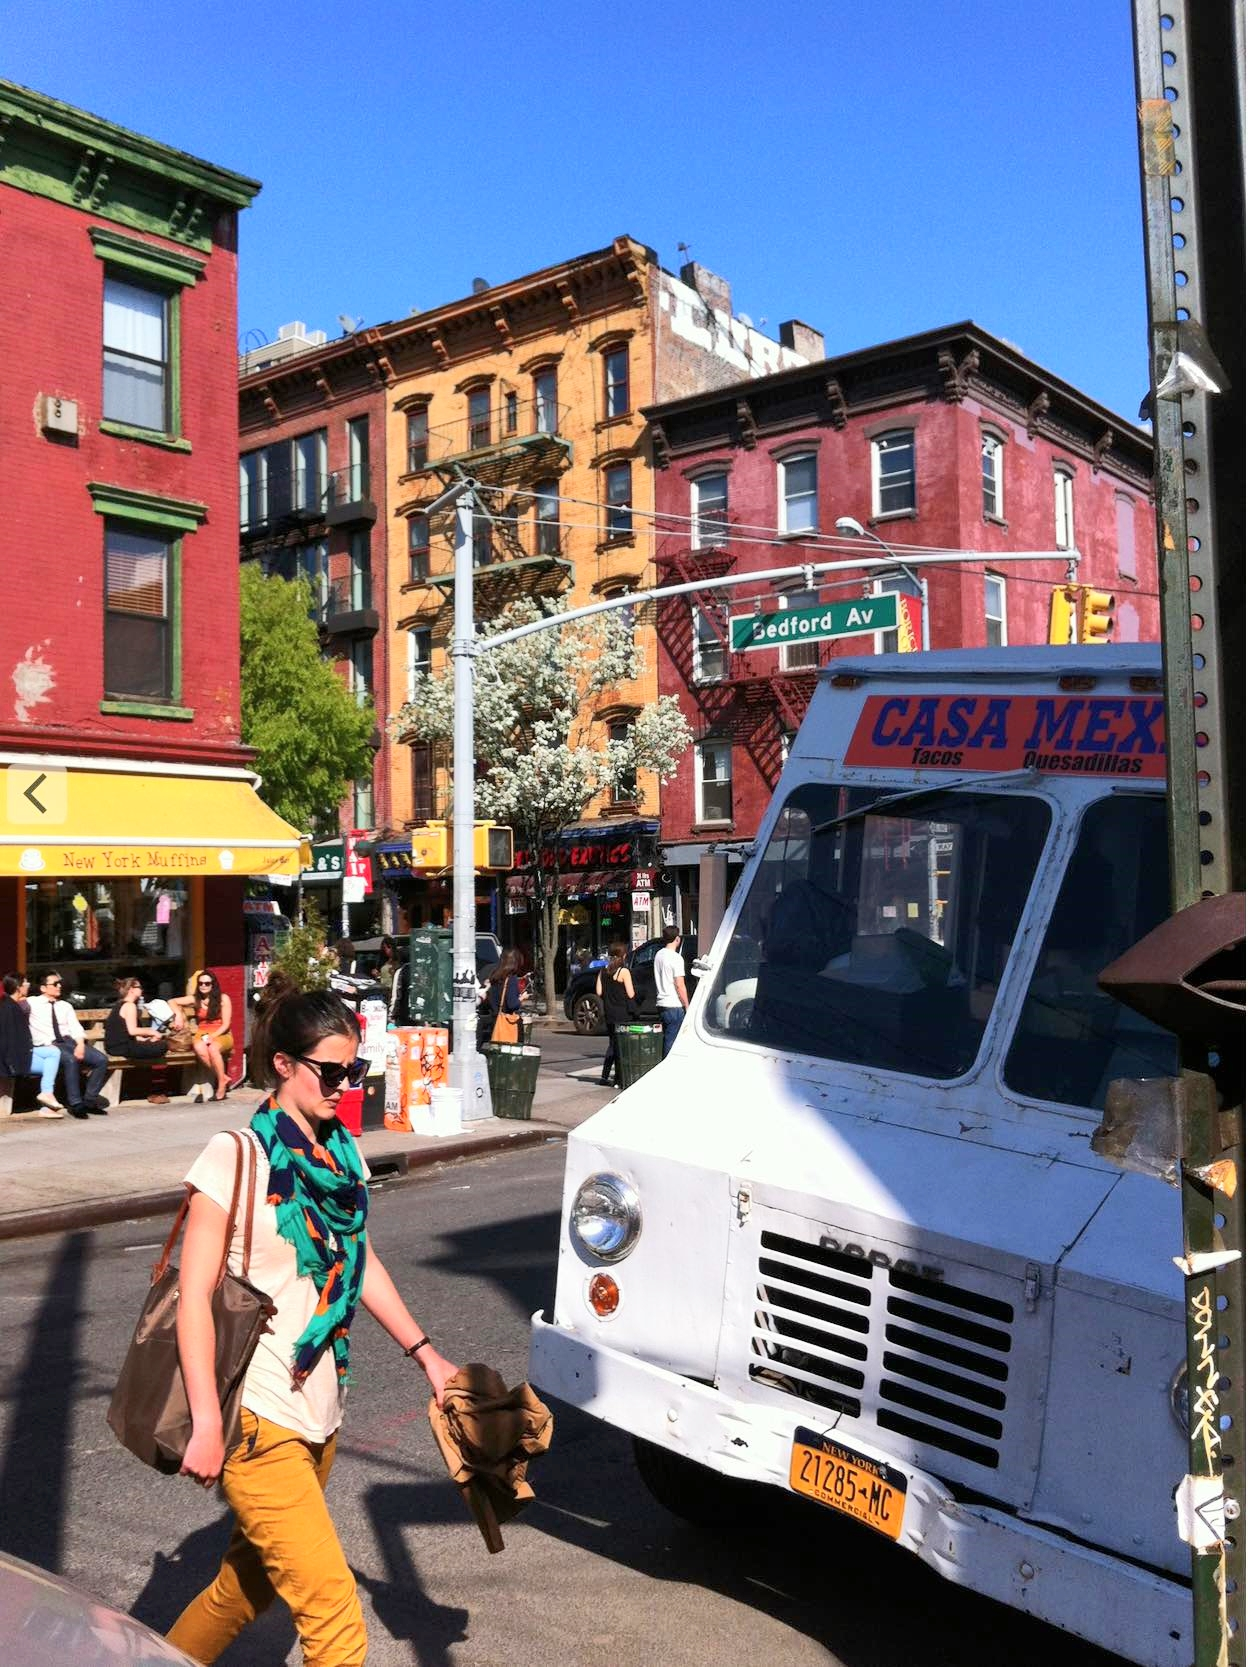 Williamsburg is just 3 subway stops away from Union Square / 14th Street, in Manhattan. Take the L train to Bedford Avenue.